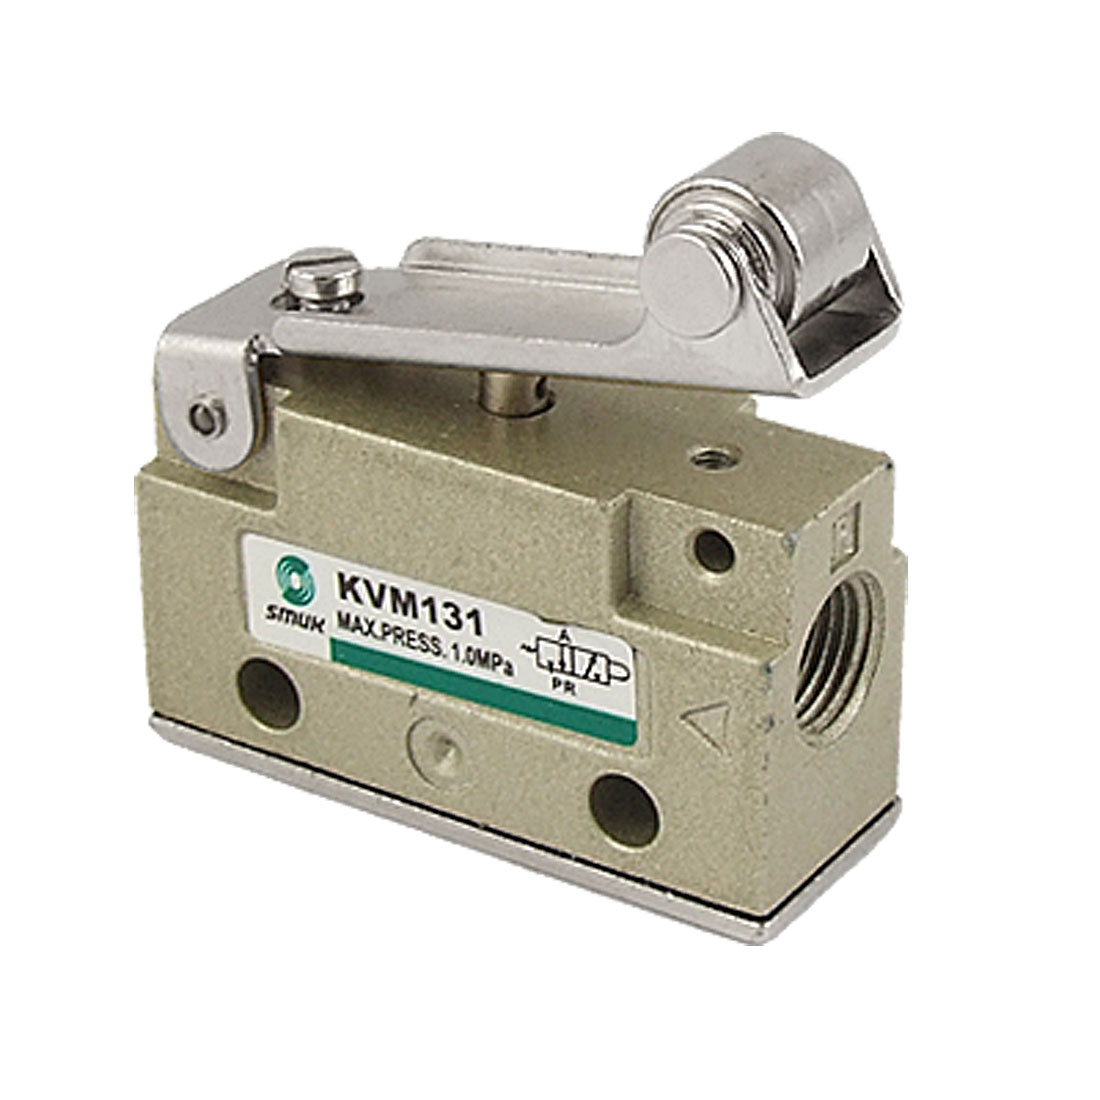 VM131-01-01 2 Position 3 Way Roller Lever Mechanical Valve